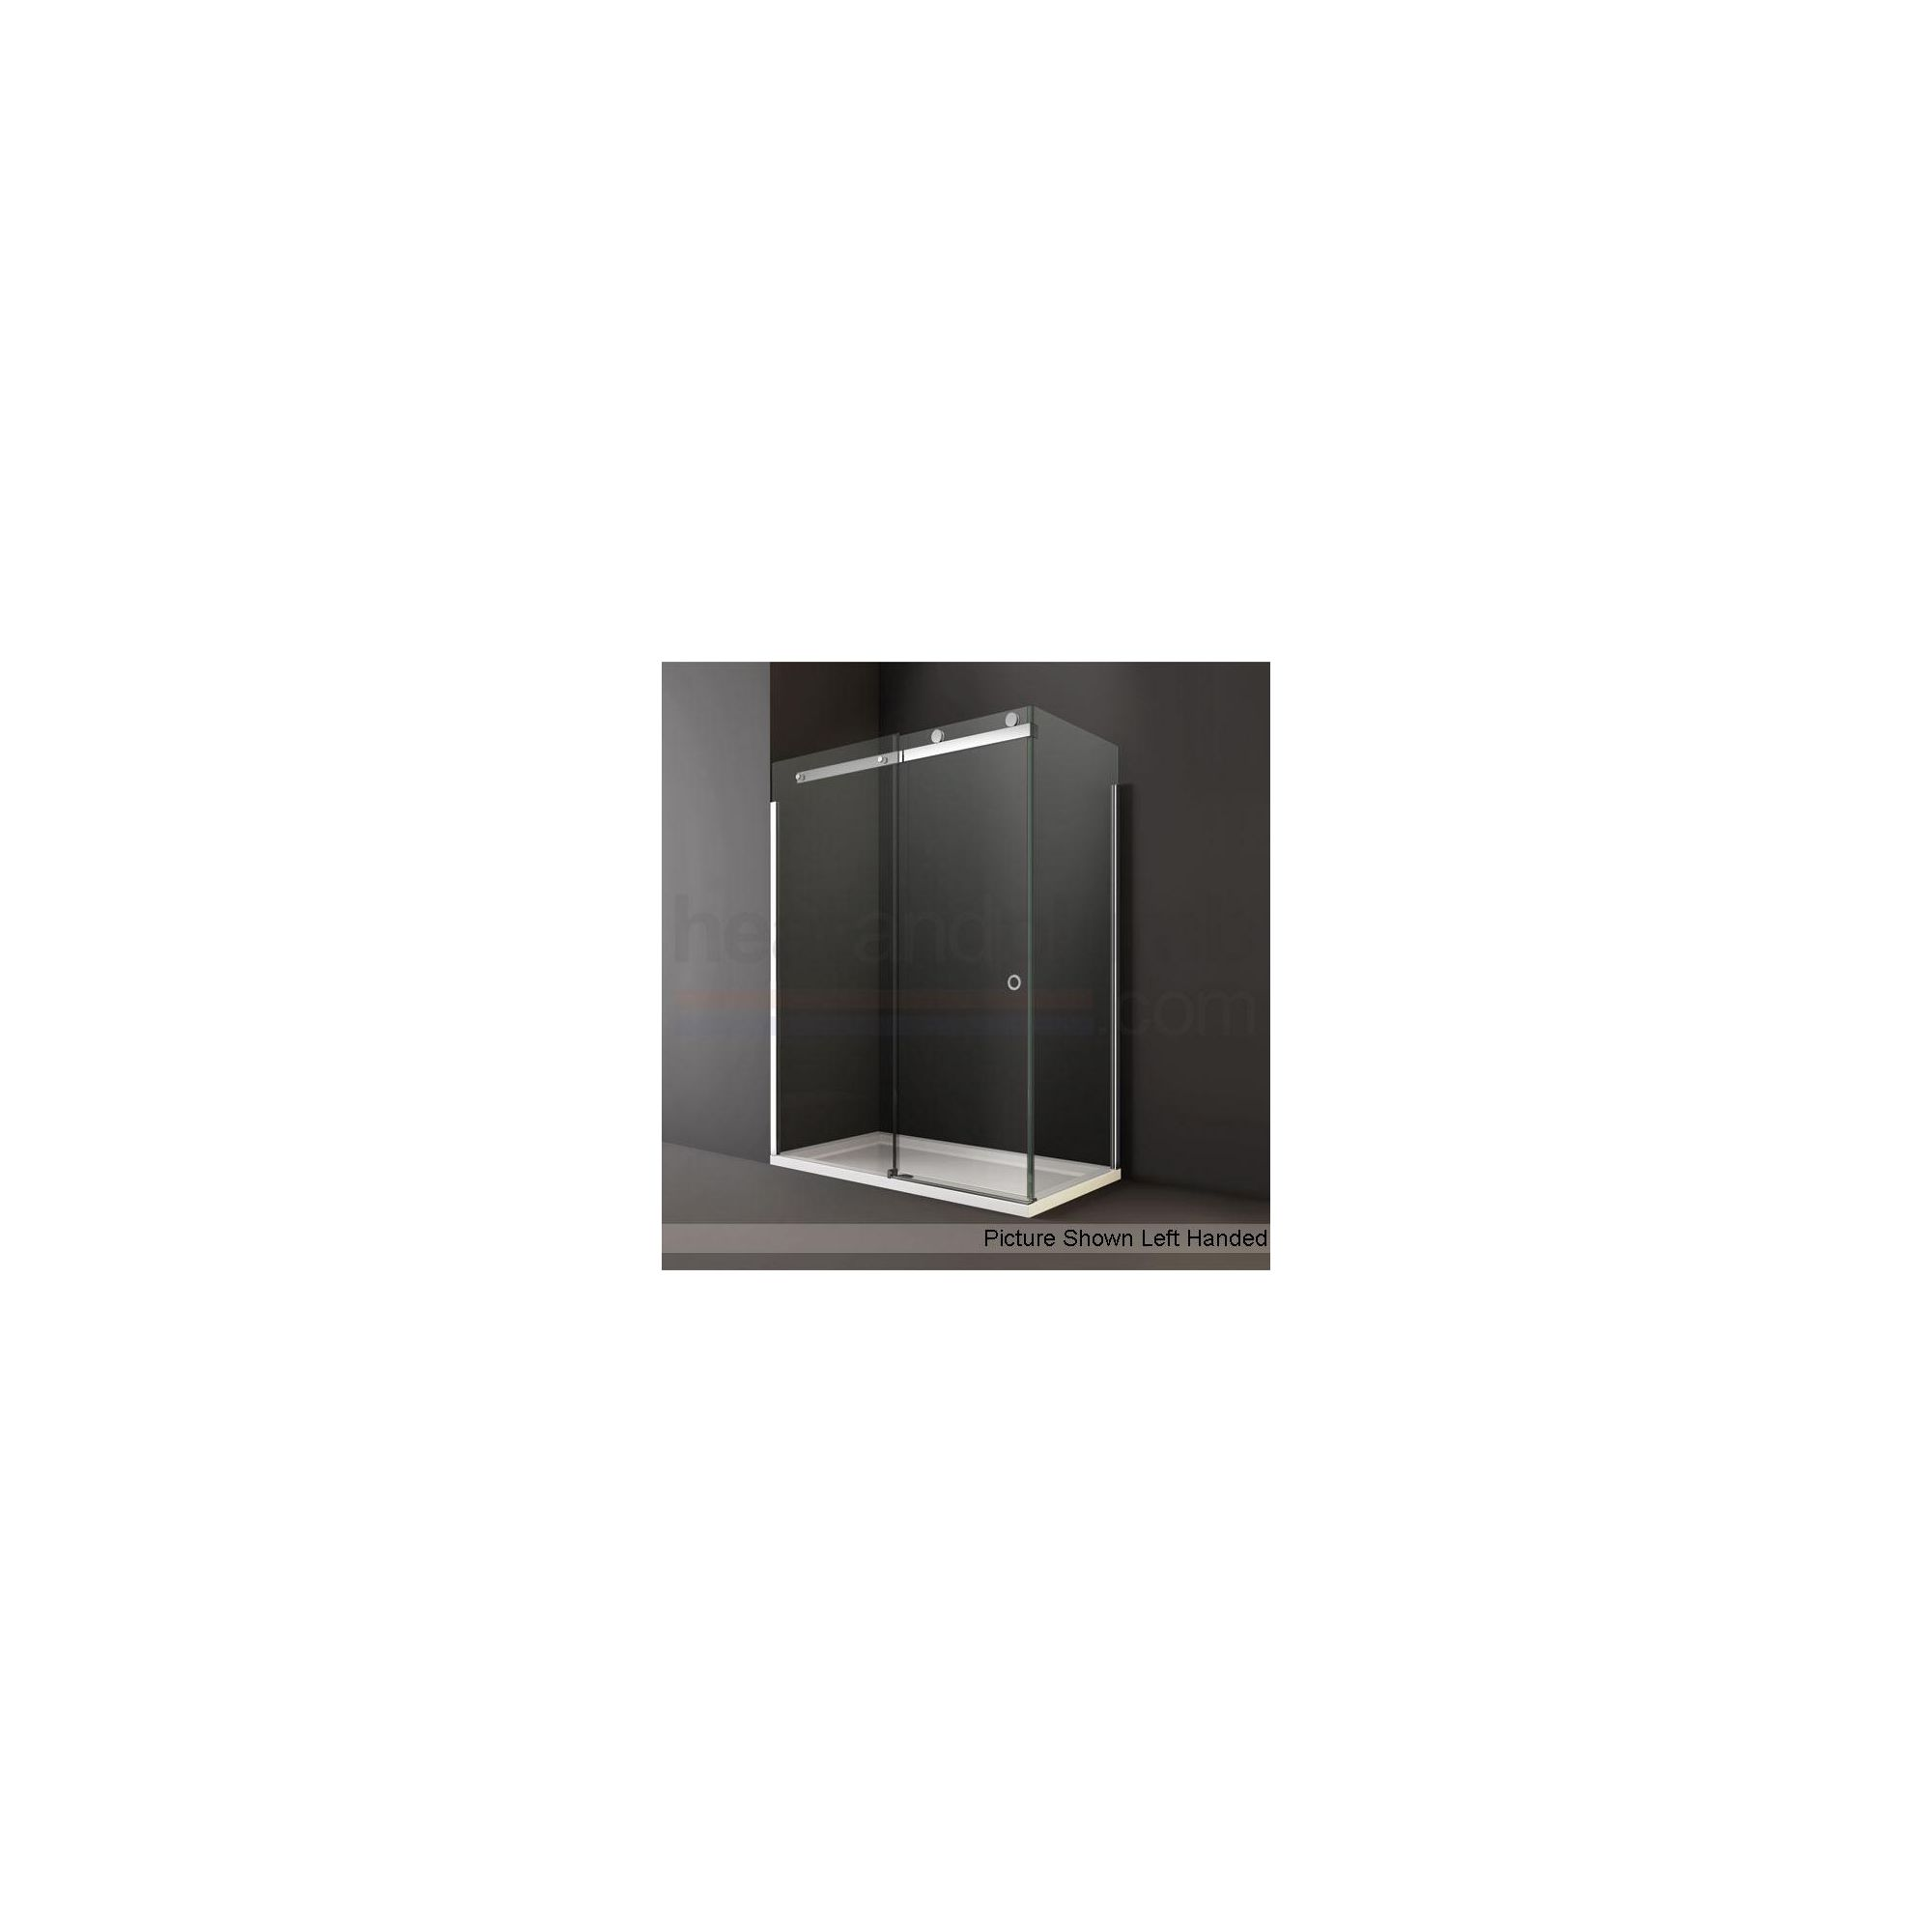 Merlyn Series 10 Sliding Door Shower Enclosure, 1200mm x 900mm, Low Profile Tray, 10mm Glass at Tesco Direct